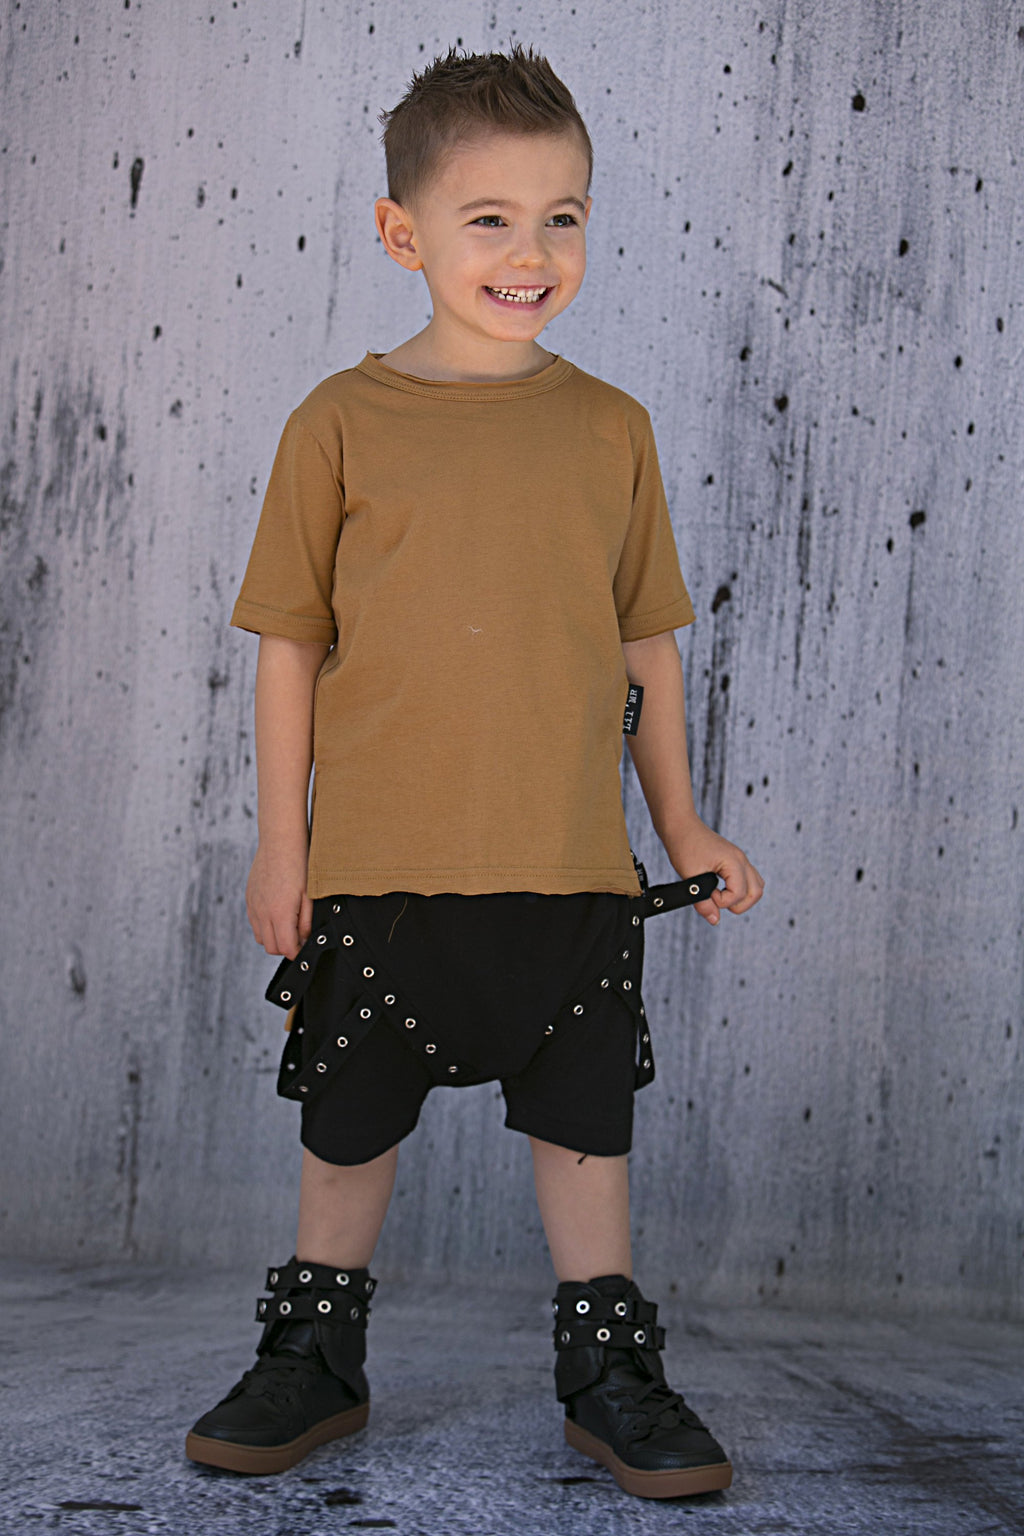 Lil'Mr Commando Shorts Black - Threads for Boys